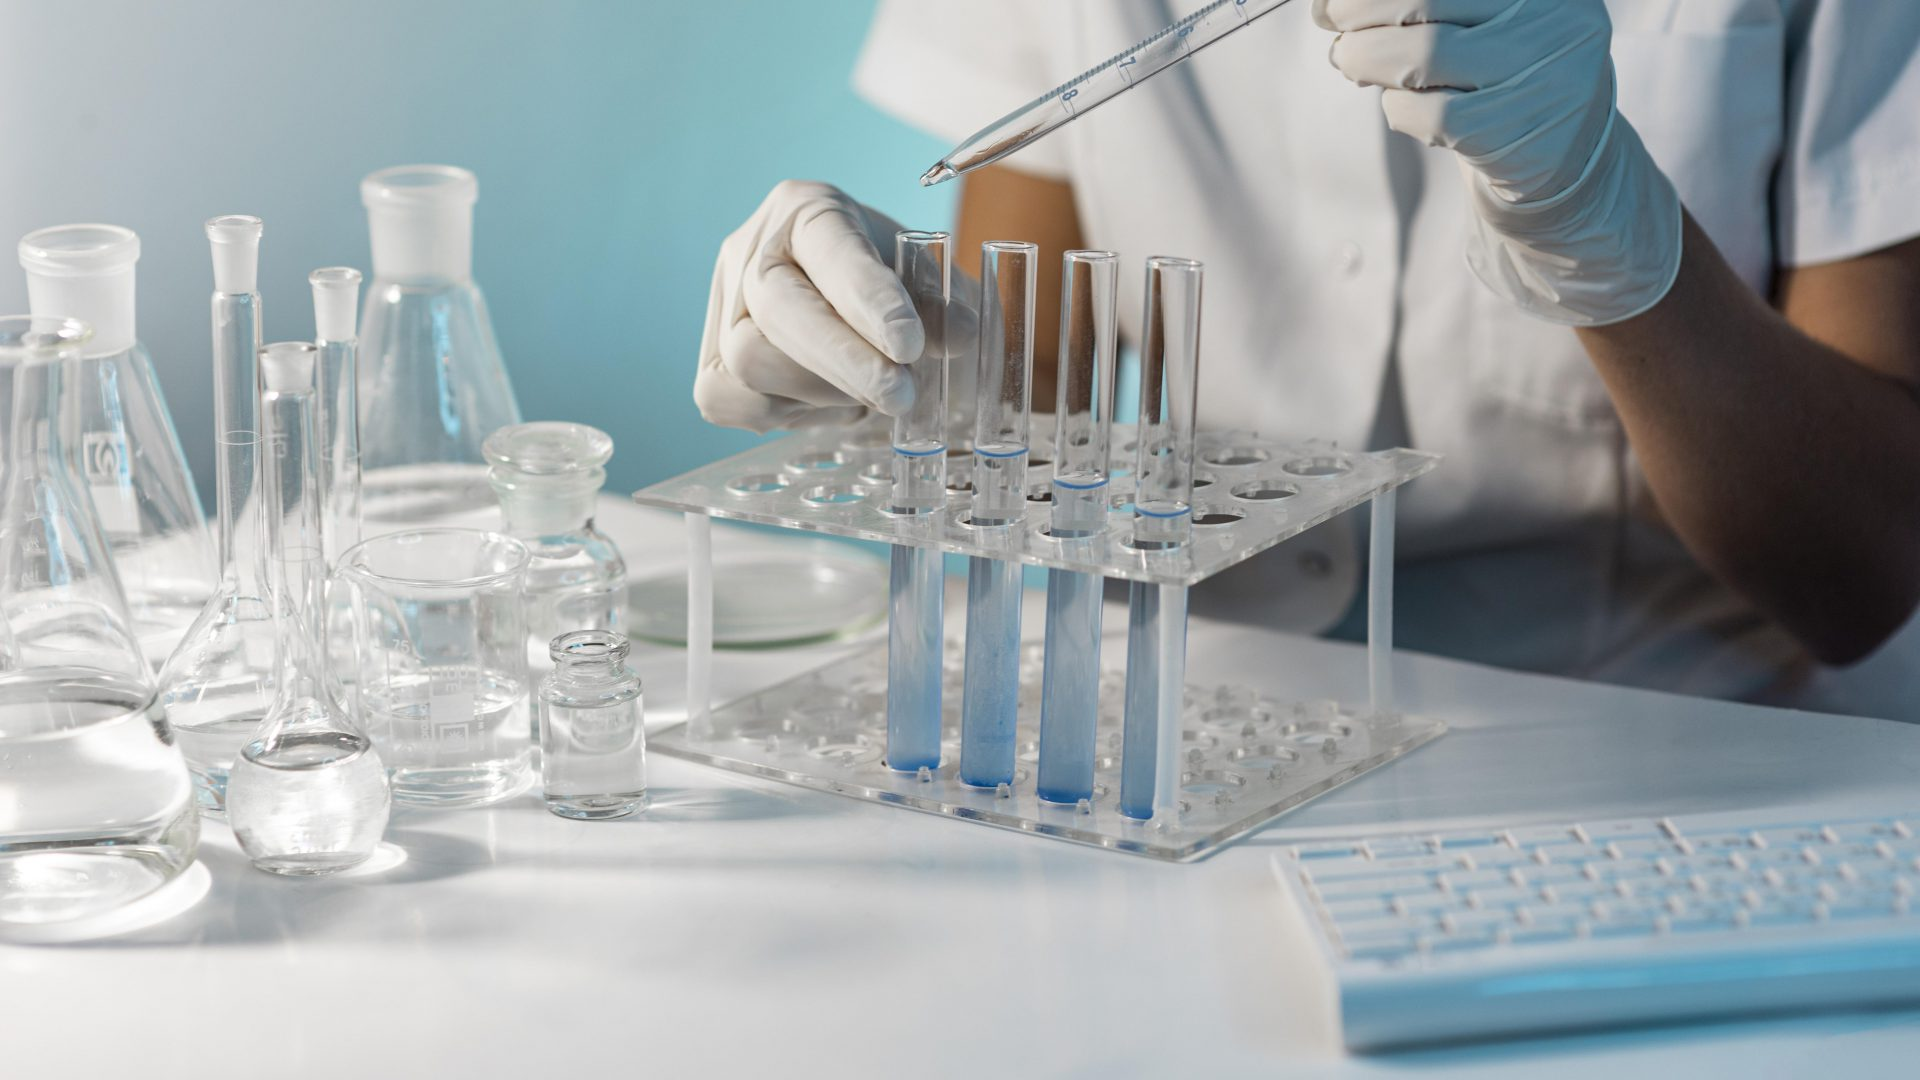 close-up-scientist-holding-tube-pipette